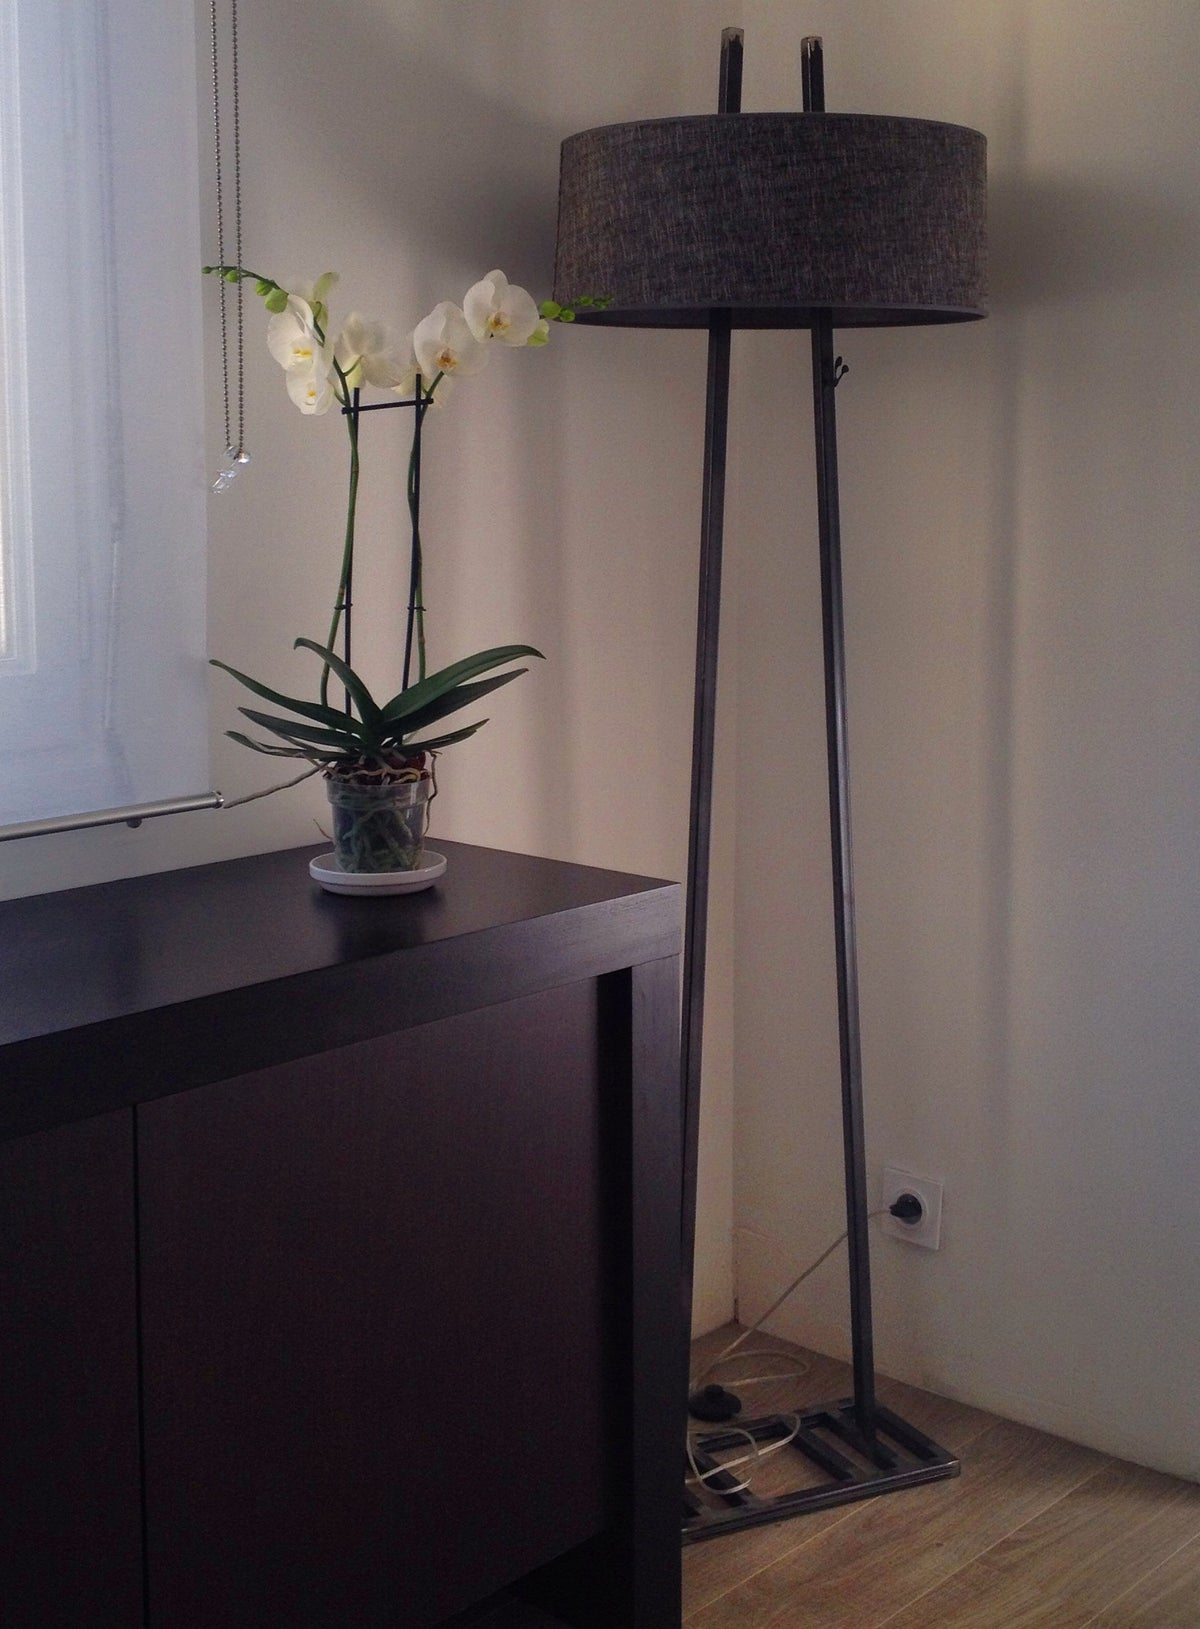 Image of ★ Lampadaire ★